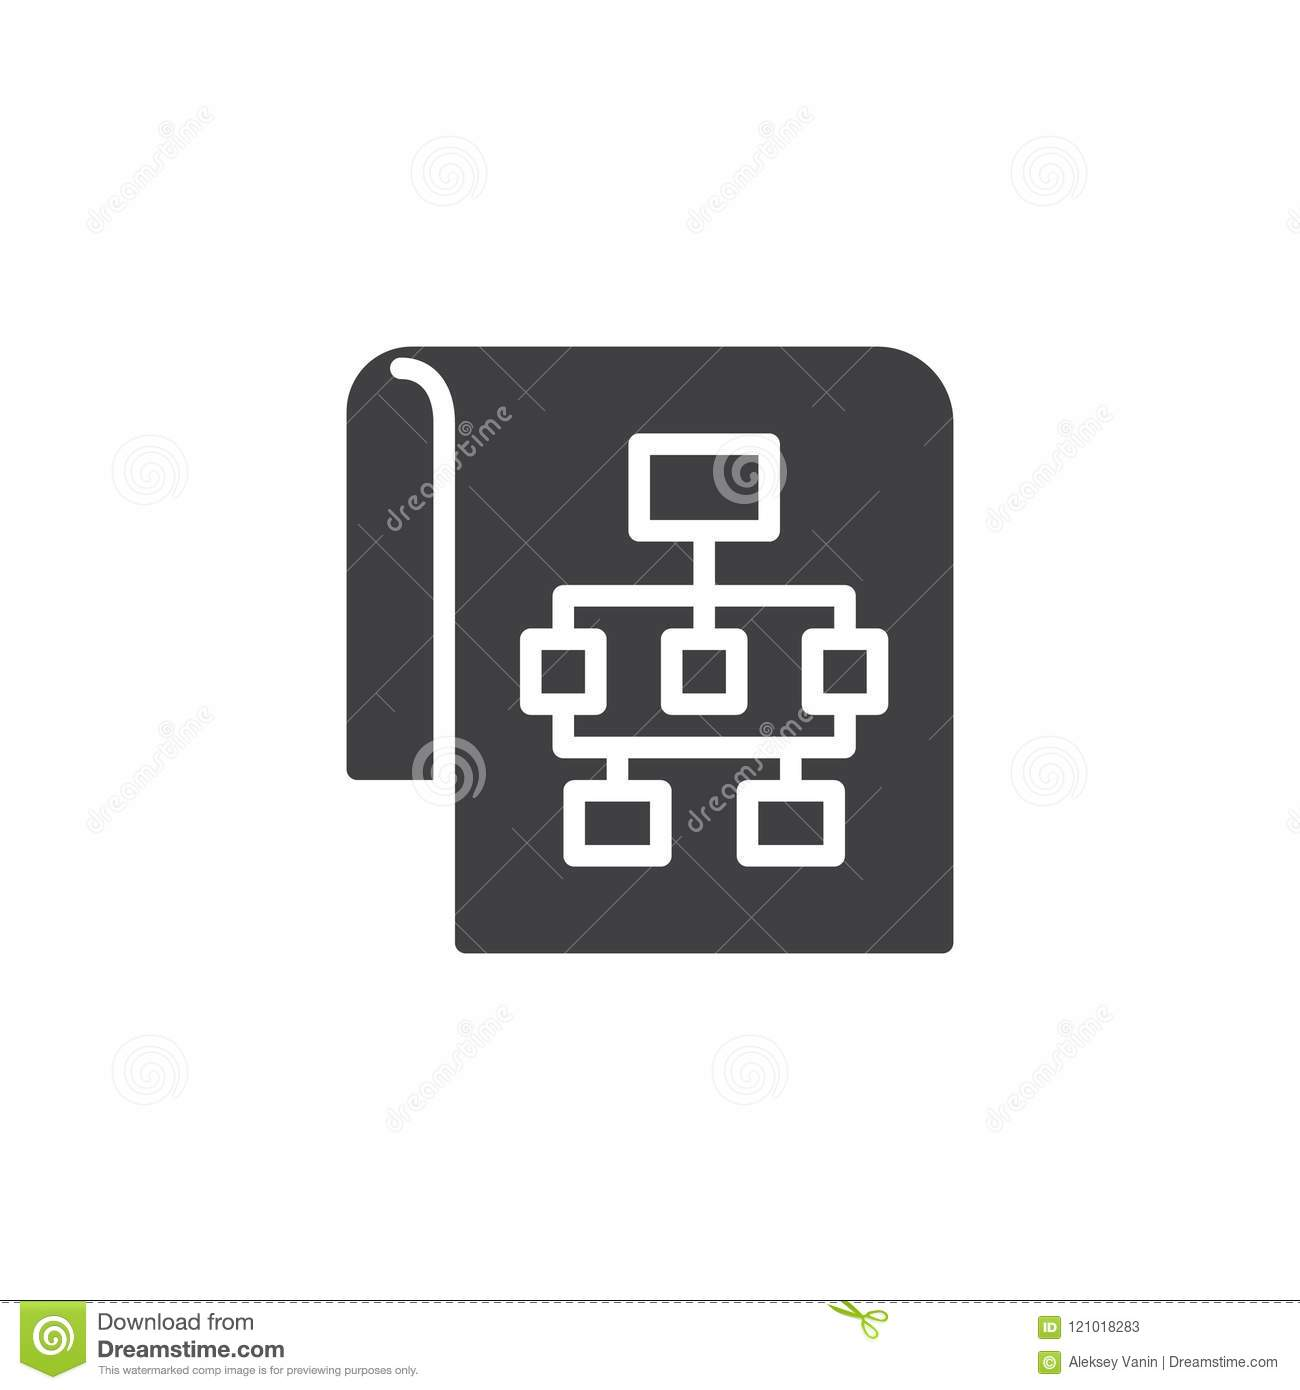 Sitemap vector icon